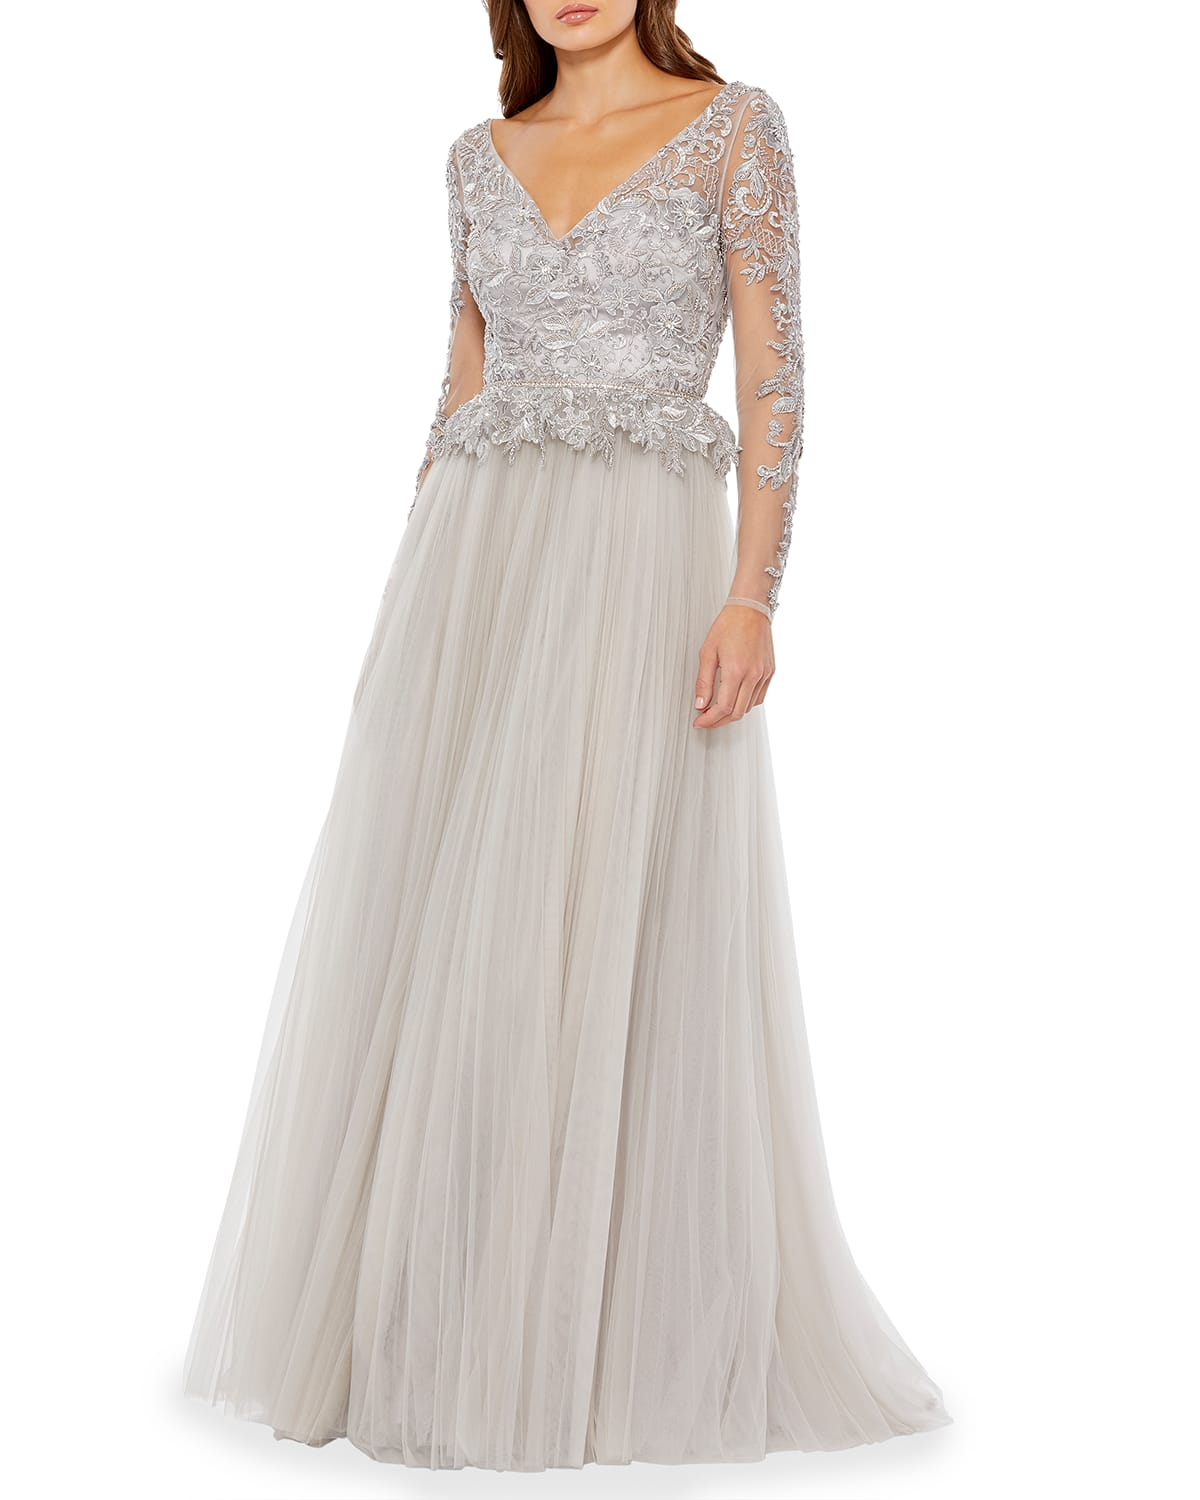 Long-Sleeve Illusion Embellished Tulle A-Line Gown